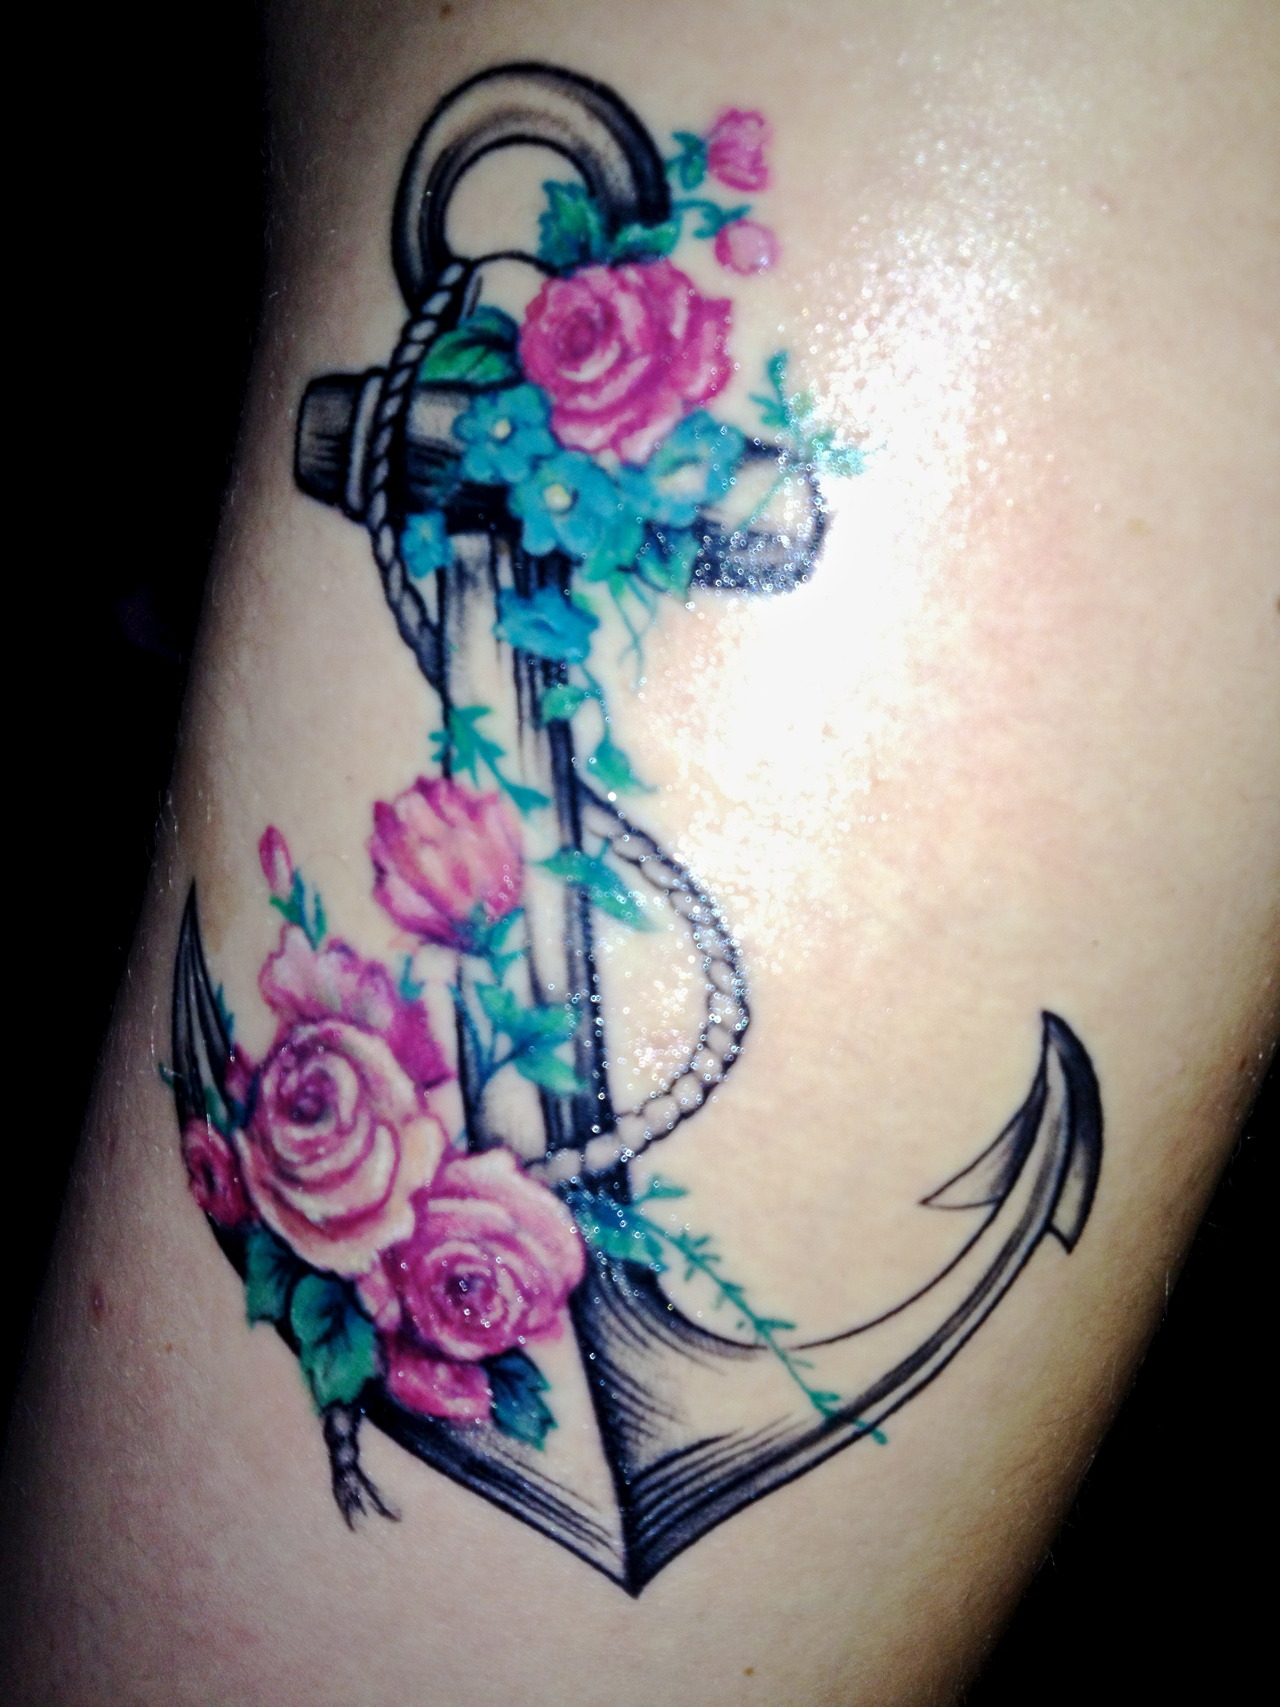 Anchor Tattoos Designs, Ideas and Meaning | Tattoos For You